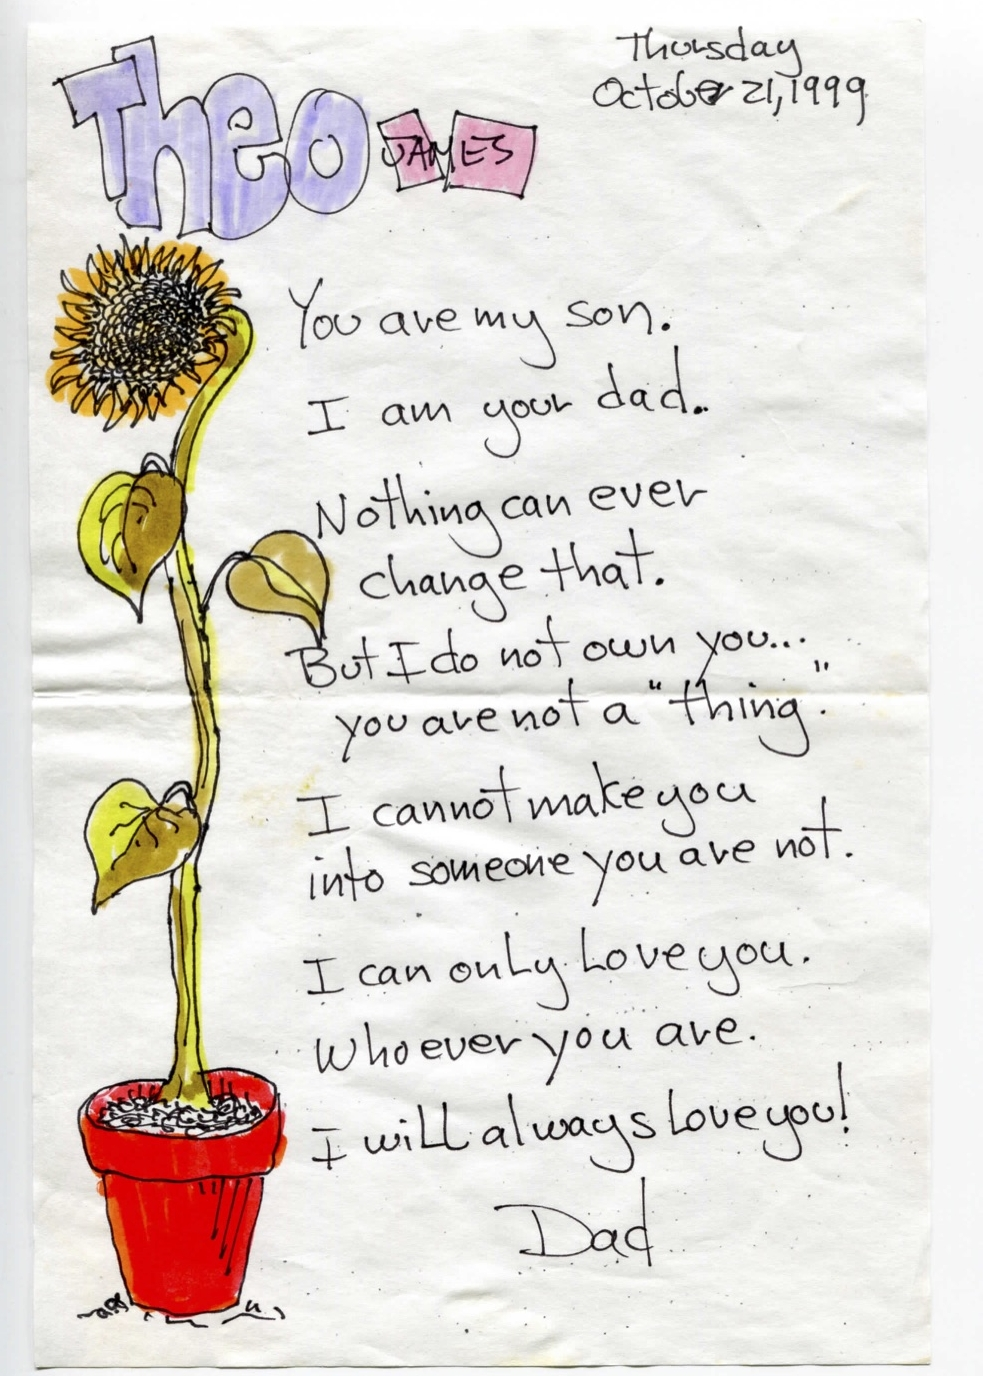 "You are my son. I am your dad. Nothing can ever change that. But I do not own you... You are not a ""thing."" I cannot make you into someone you are not. I can only love you. Whoever you are. I will always love you!"